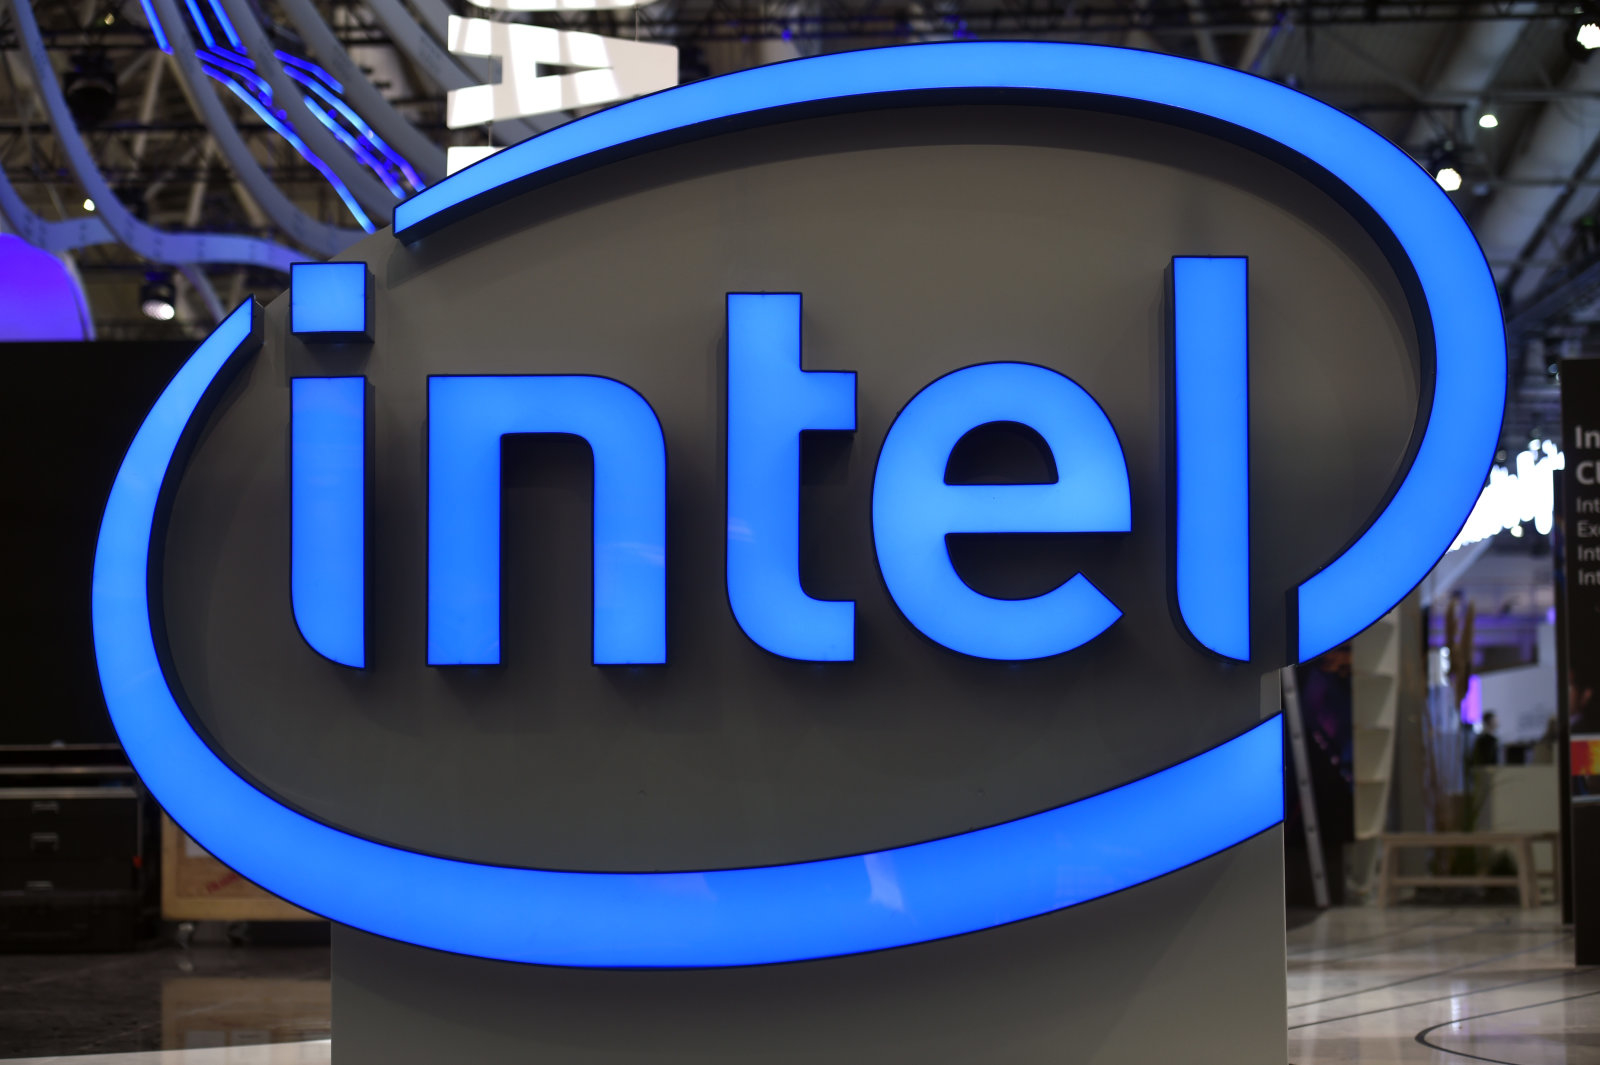 Intel's logo is pictured during preparations at the CeBit computer fair, which will open its doors to the public on March 20, at the fairground in Hanover, Germany, March 19, 2017.  REUTERS/Fabian Bimmer